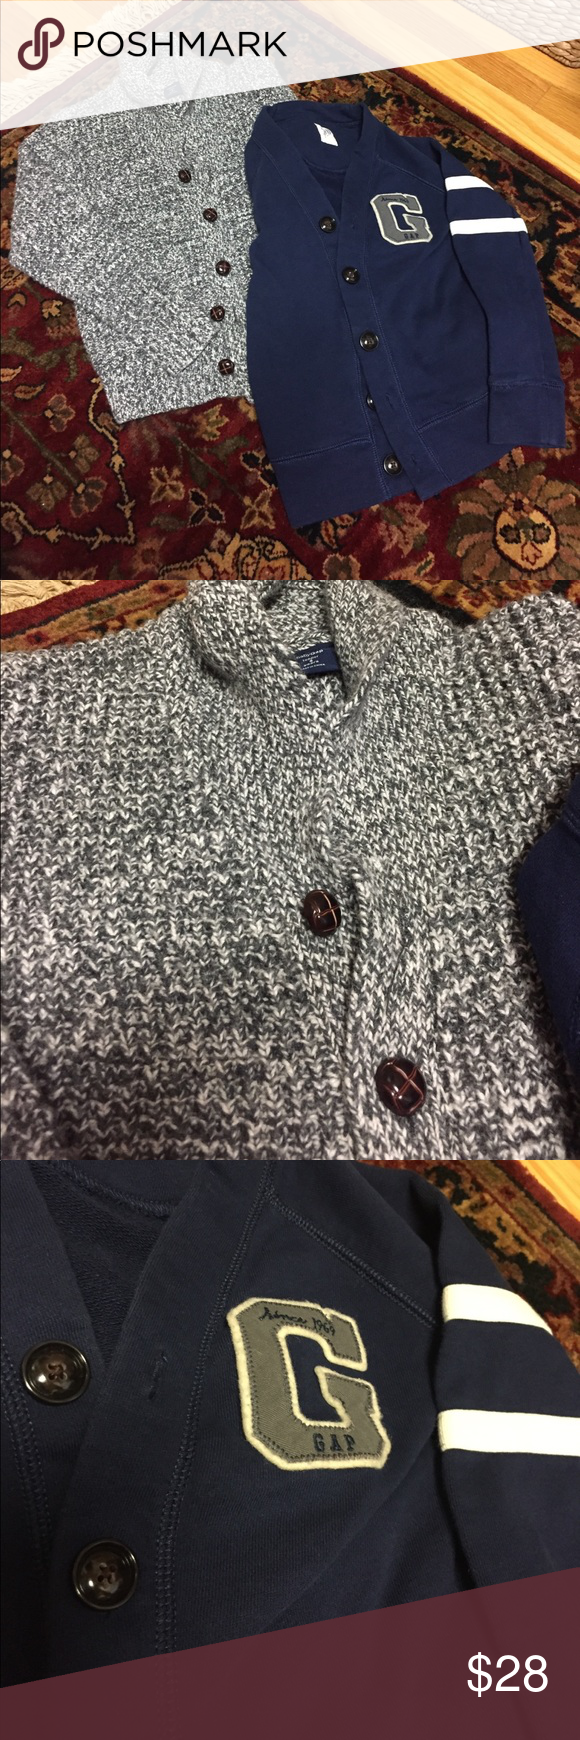 Gap Sweaters | Blue sweaters, Gray and Customer support